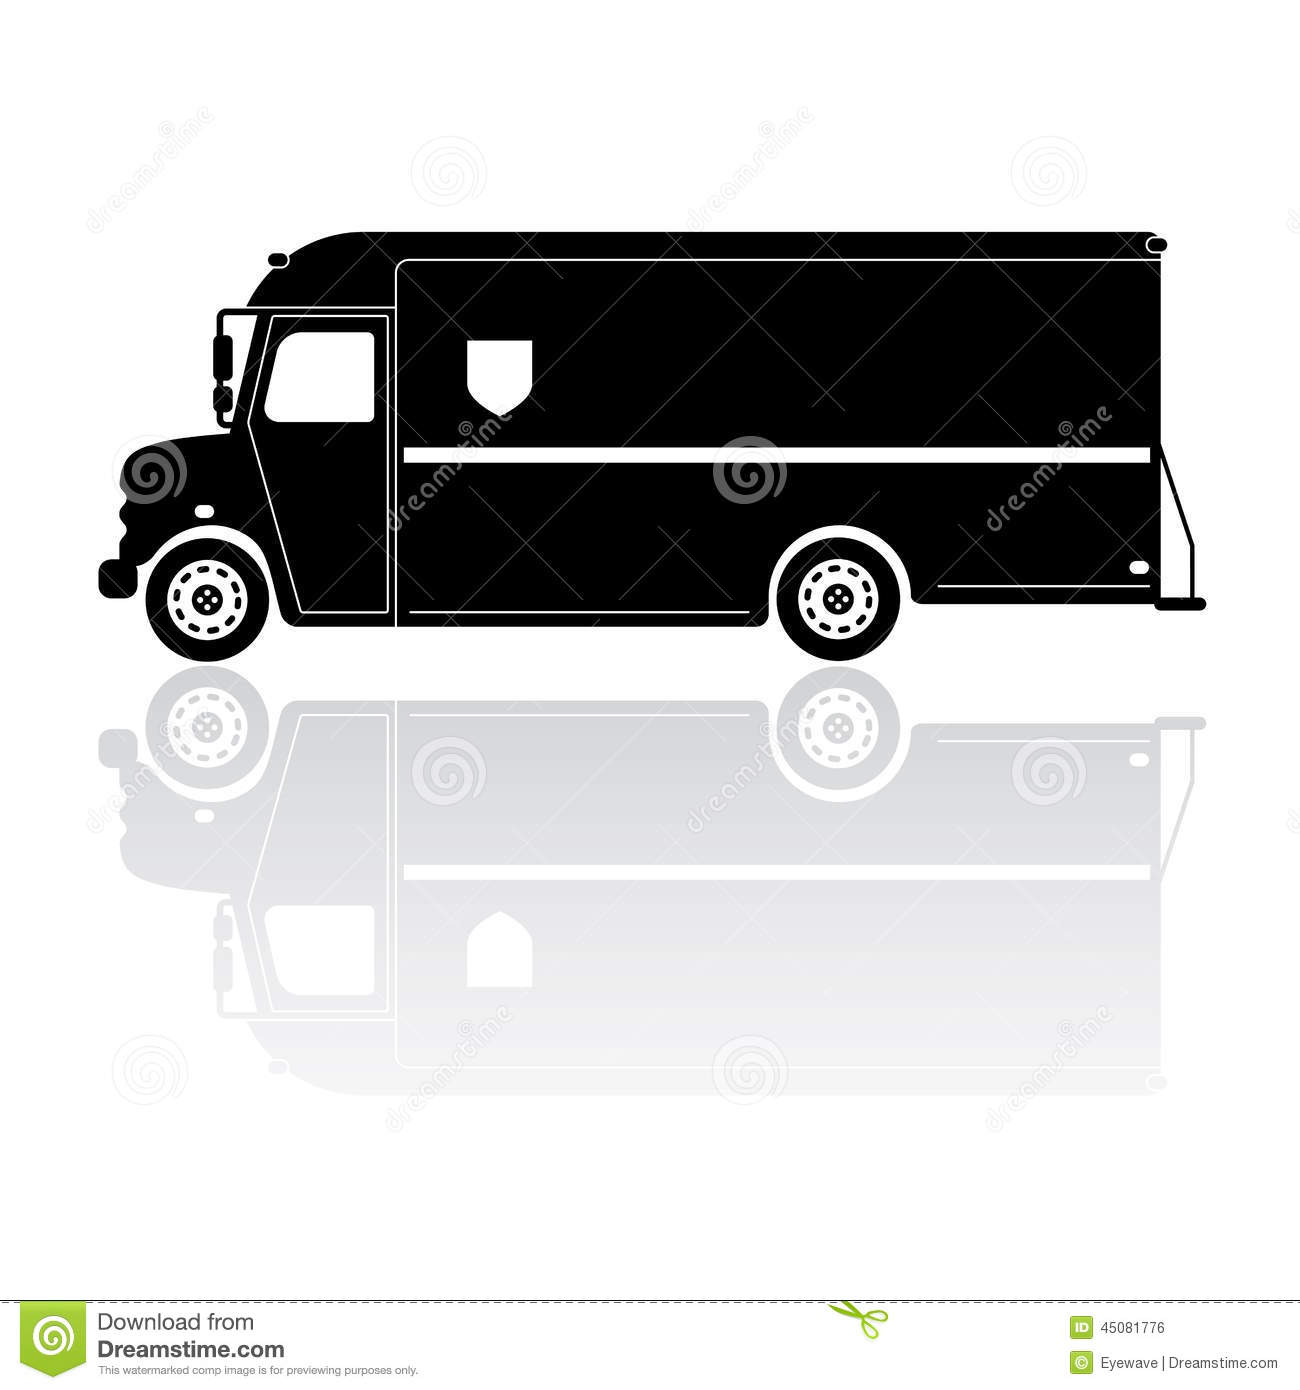 Parcel Delivery Van Silhouette Vector Icon Stock Vector ...